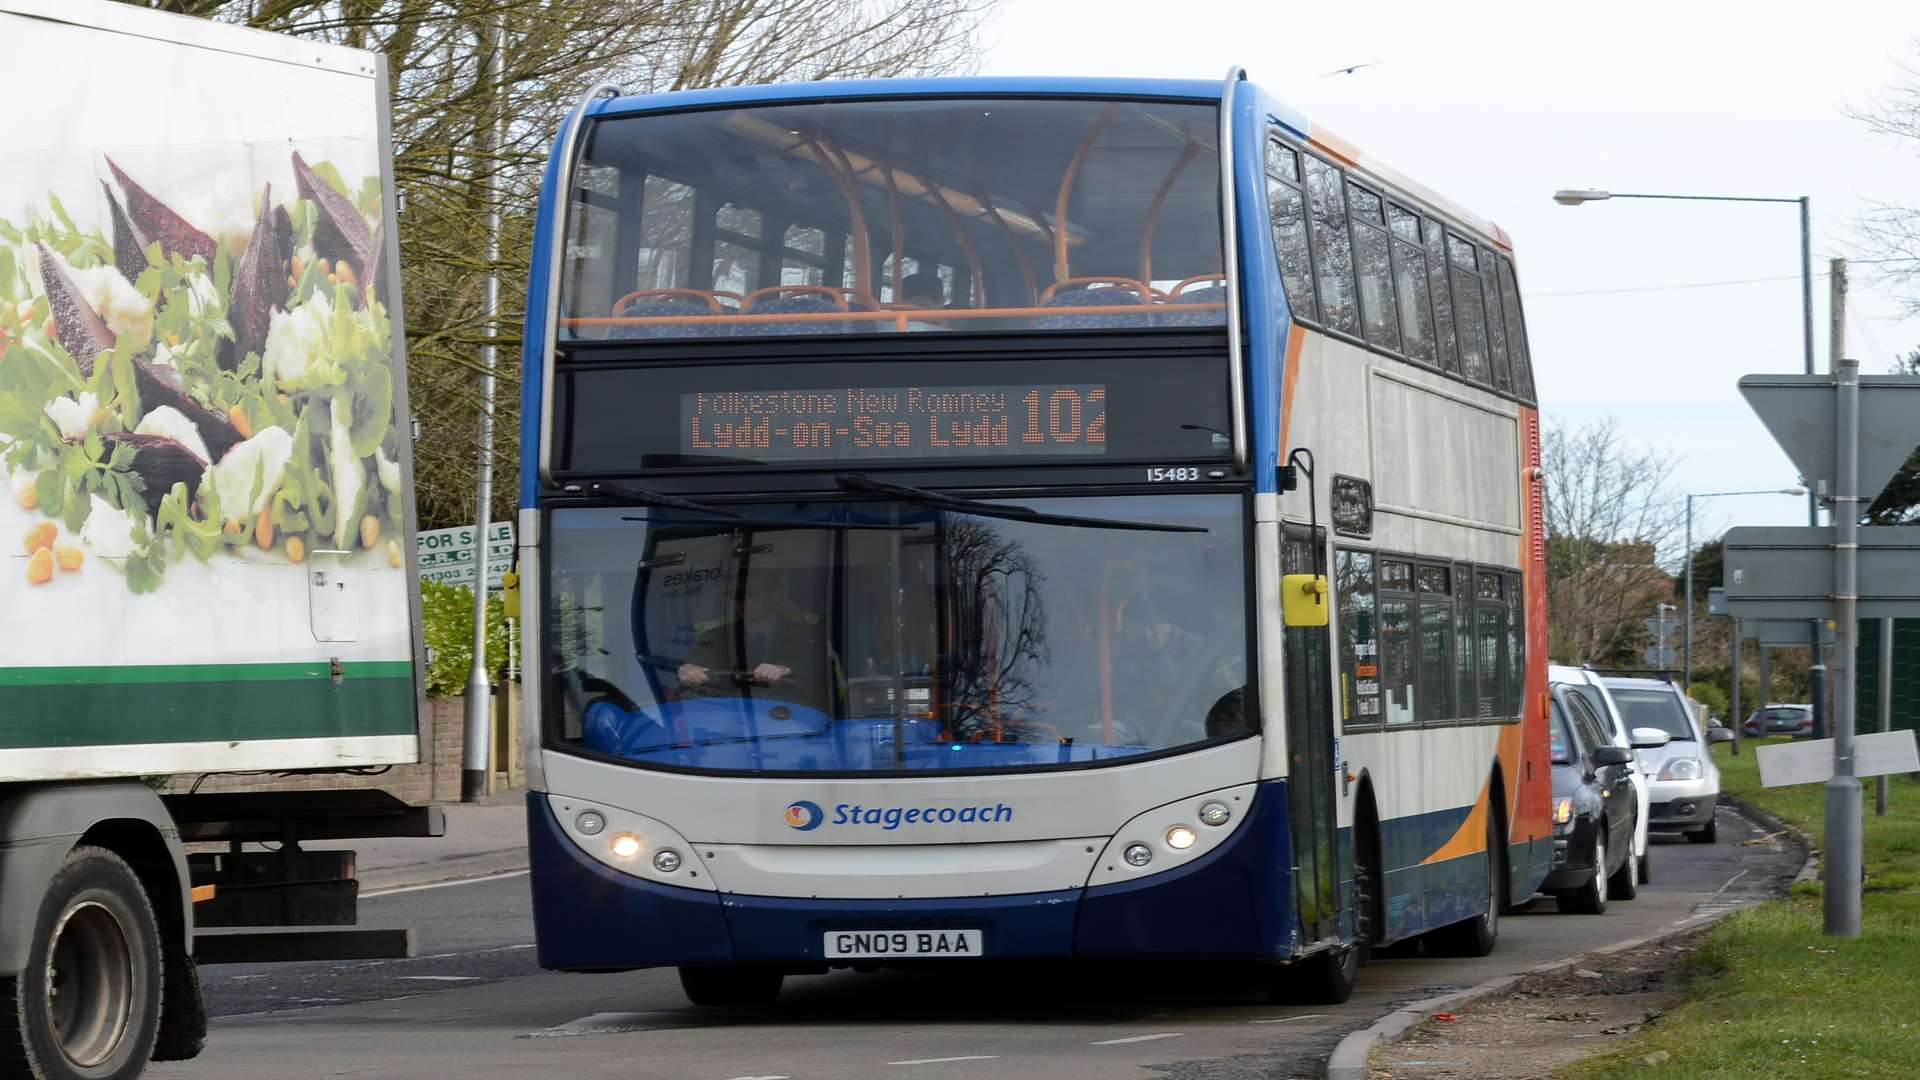 Many bus services in Kent could be under threat